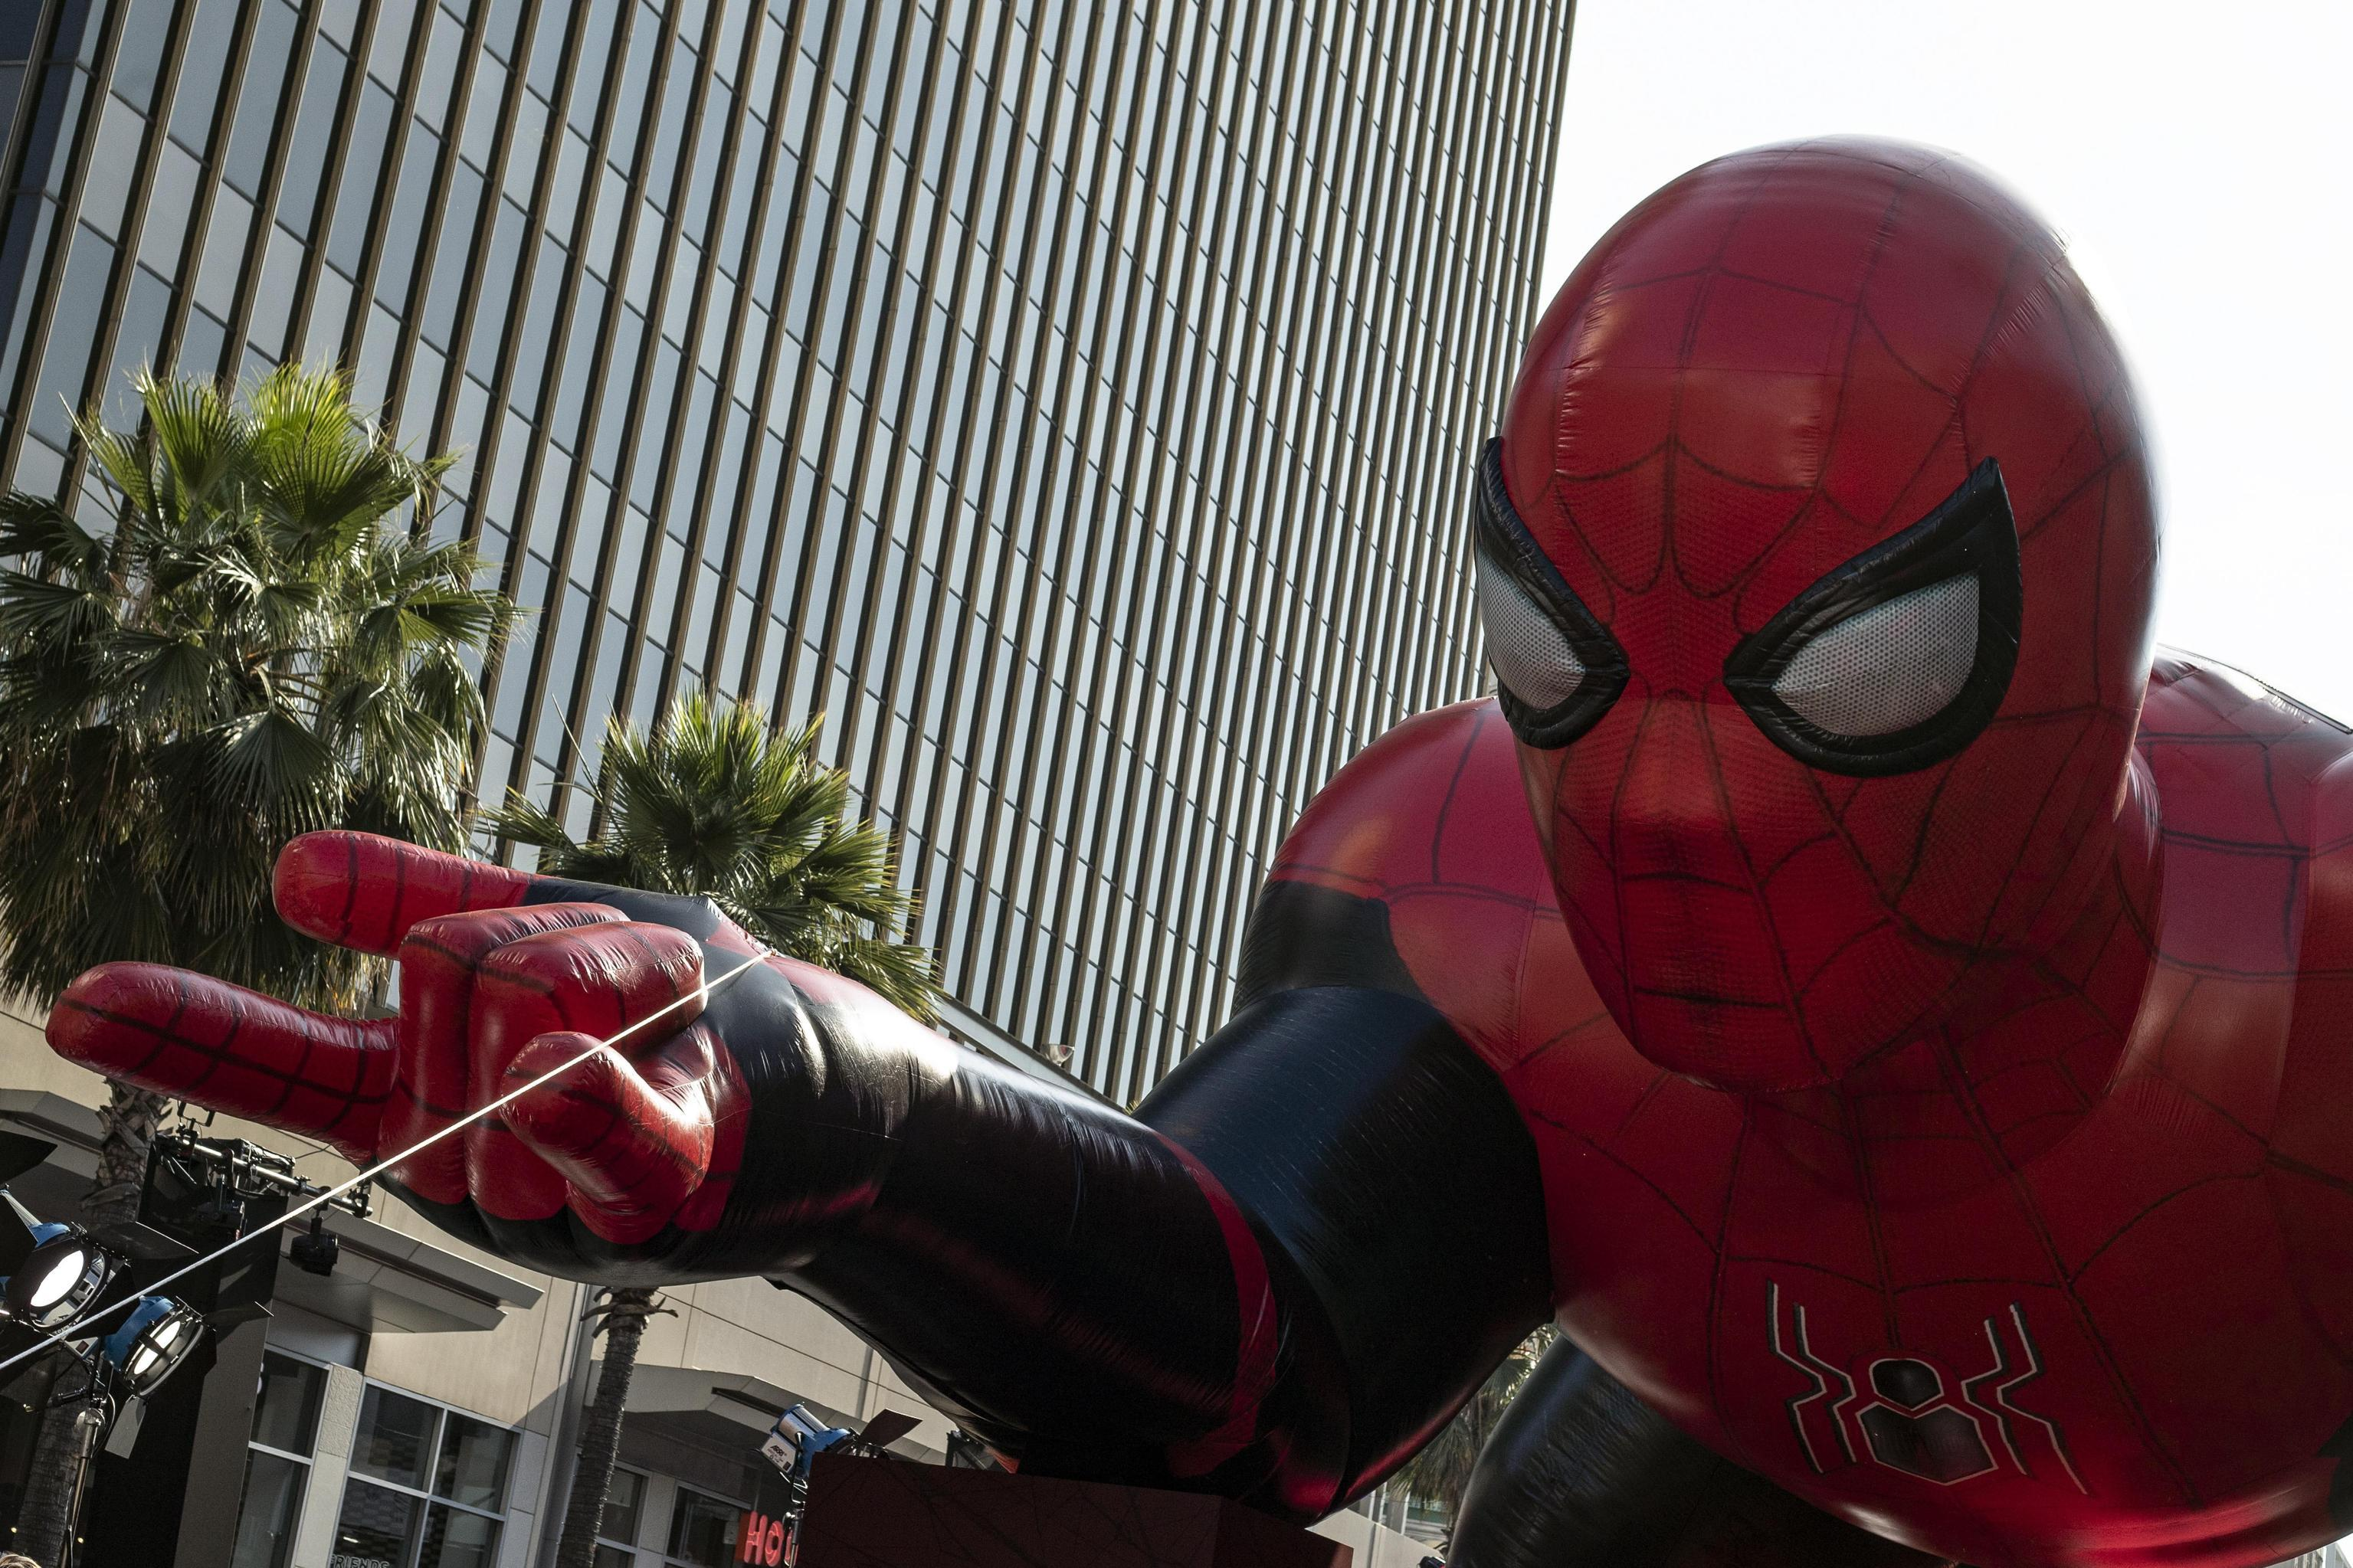 Kevin Feige spiega perché Spider-Man: Far From Home chiude l'Infinity Saga